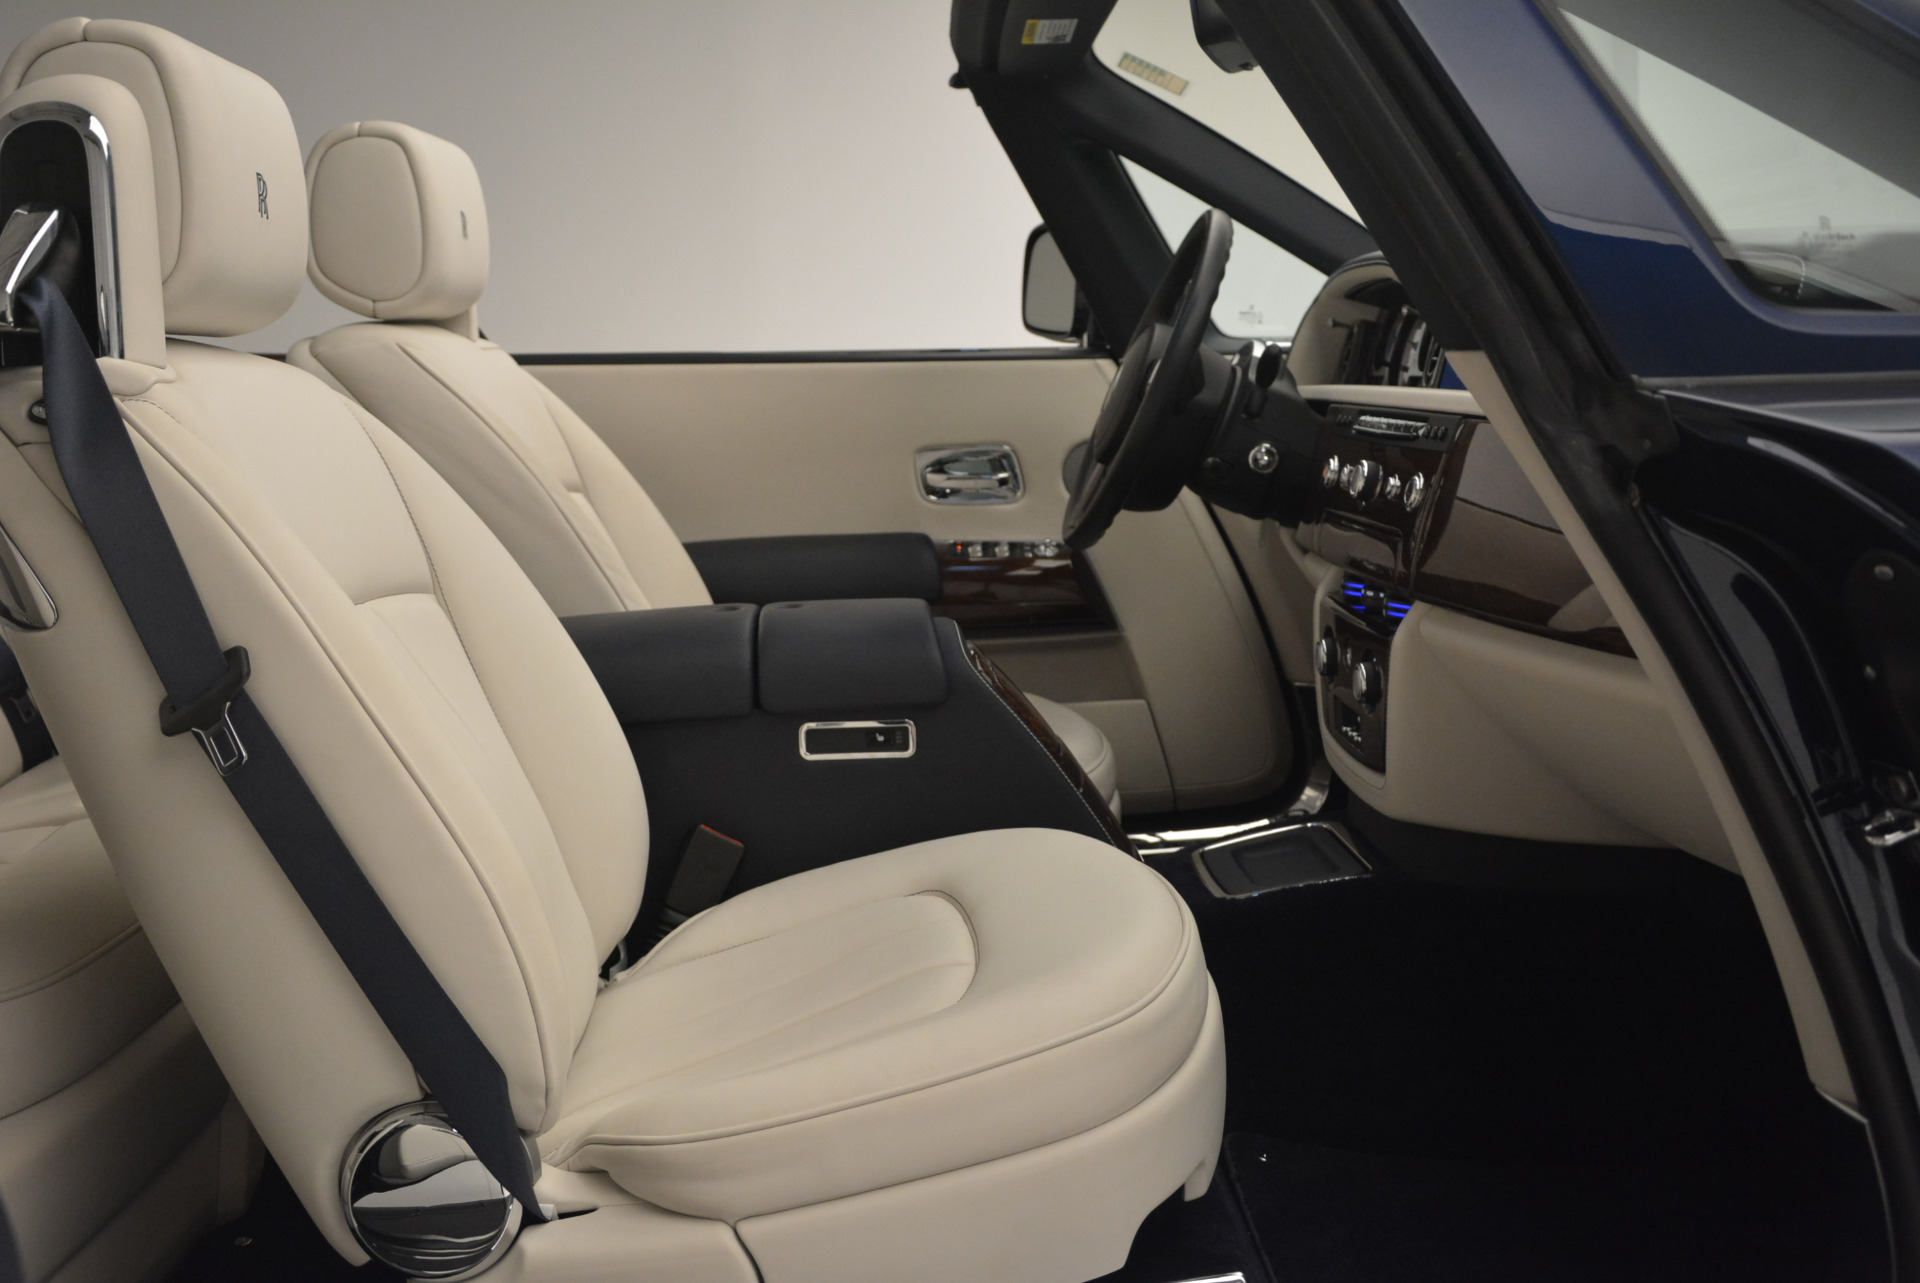 Used 2014 Rolls-Royce Phantom Drophead Coupe  For Sale In Greenwich, CT. Alfa Romeo of Greenwich, 7644 2356_p23